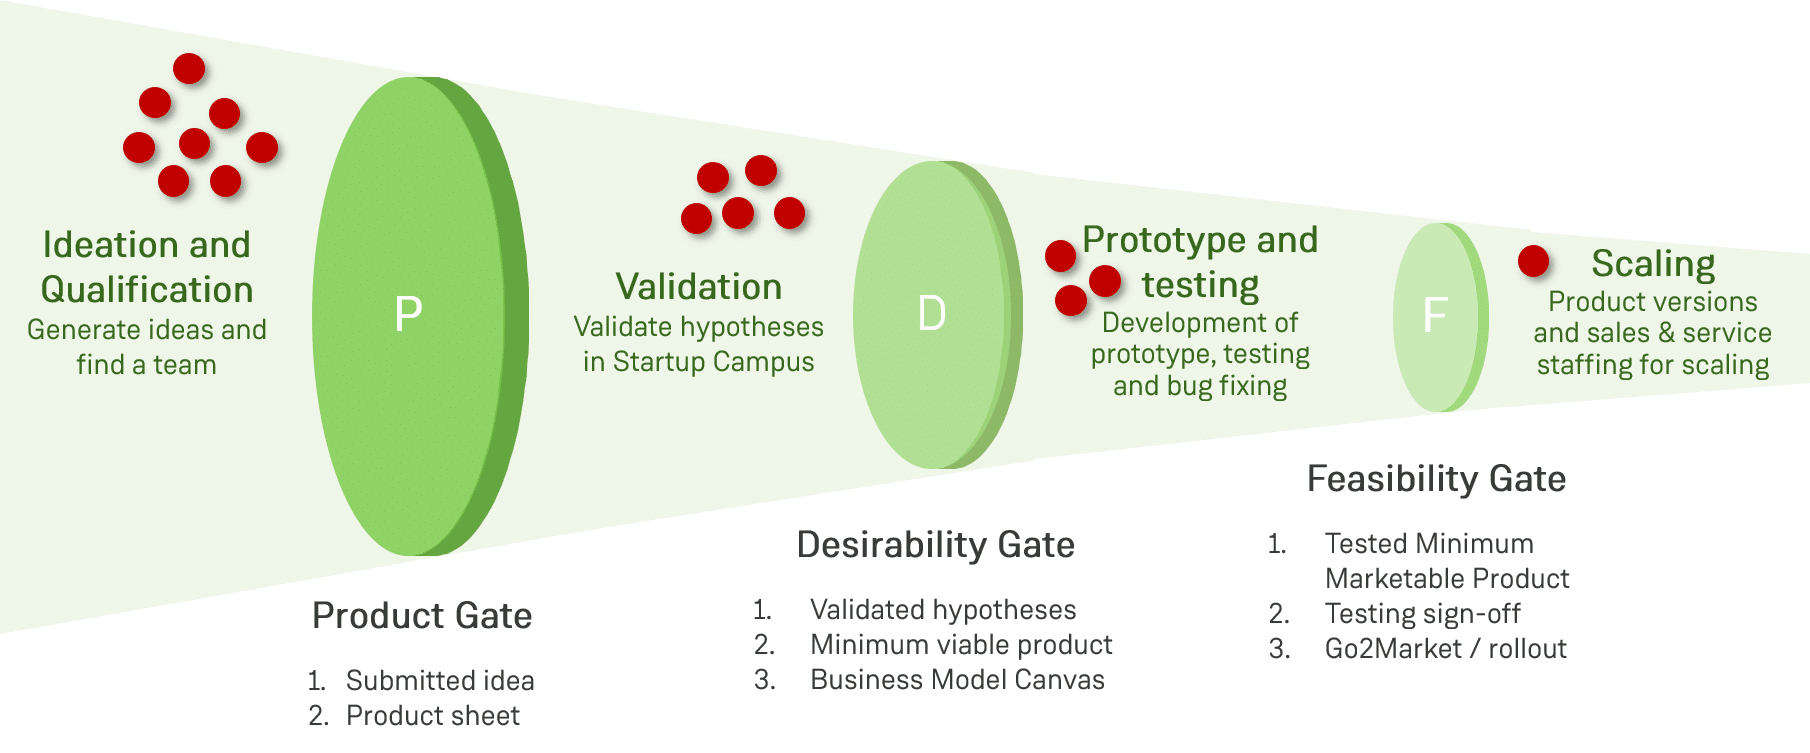 Product Gate